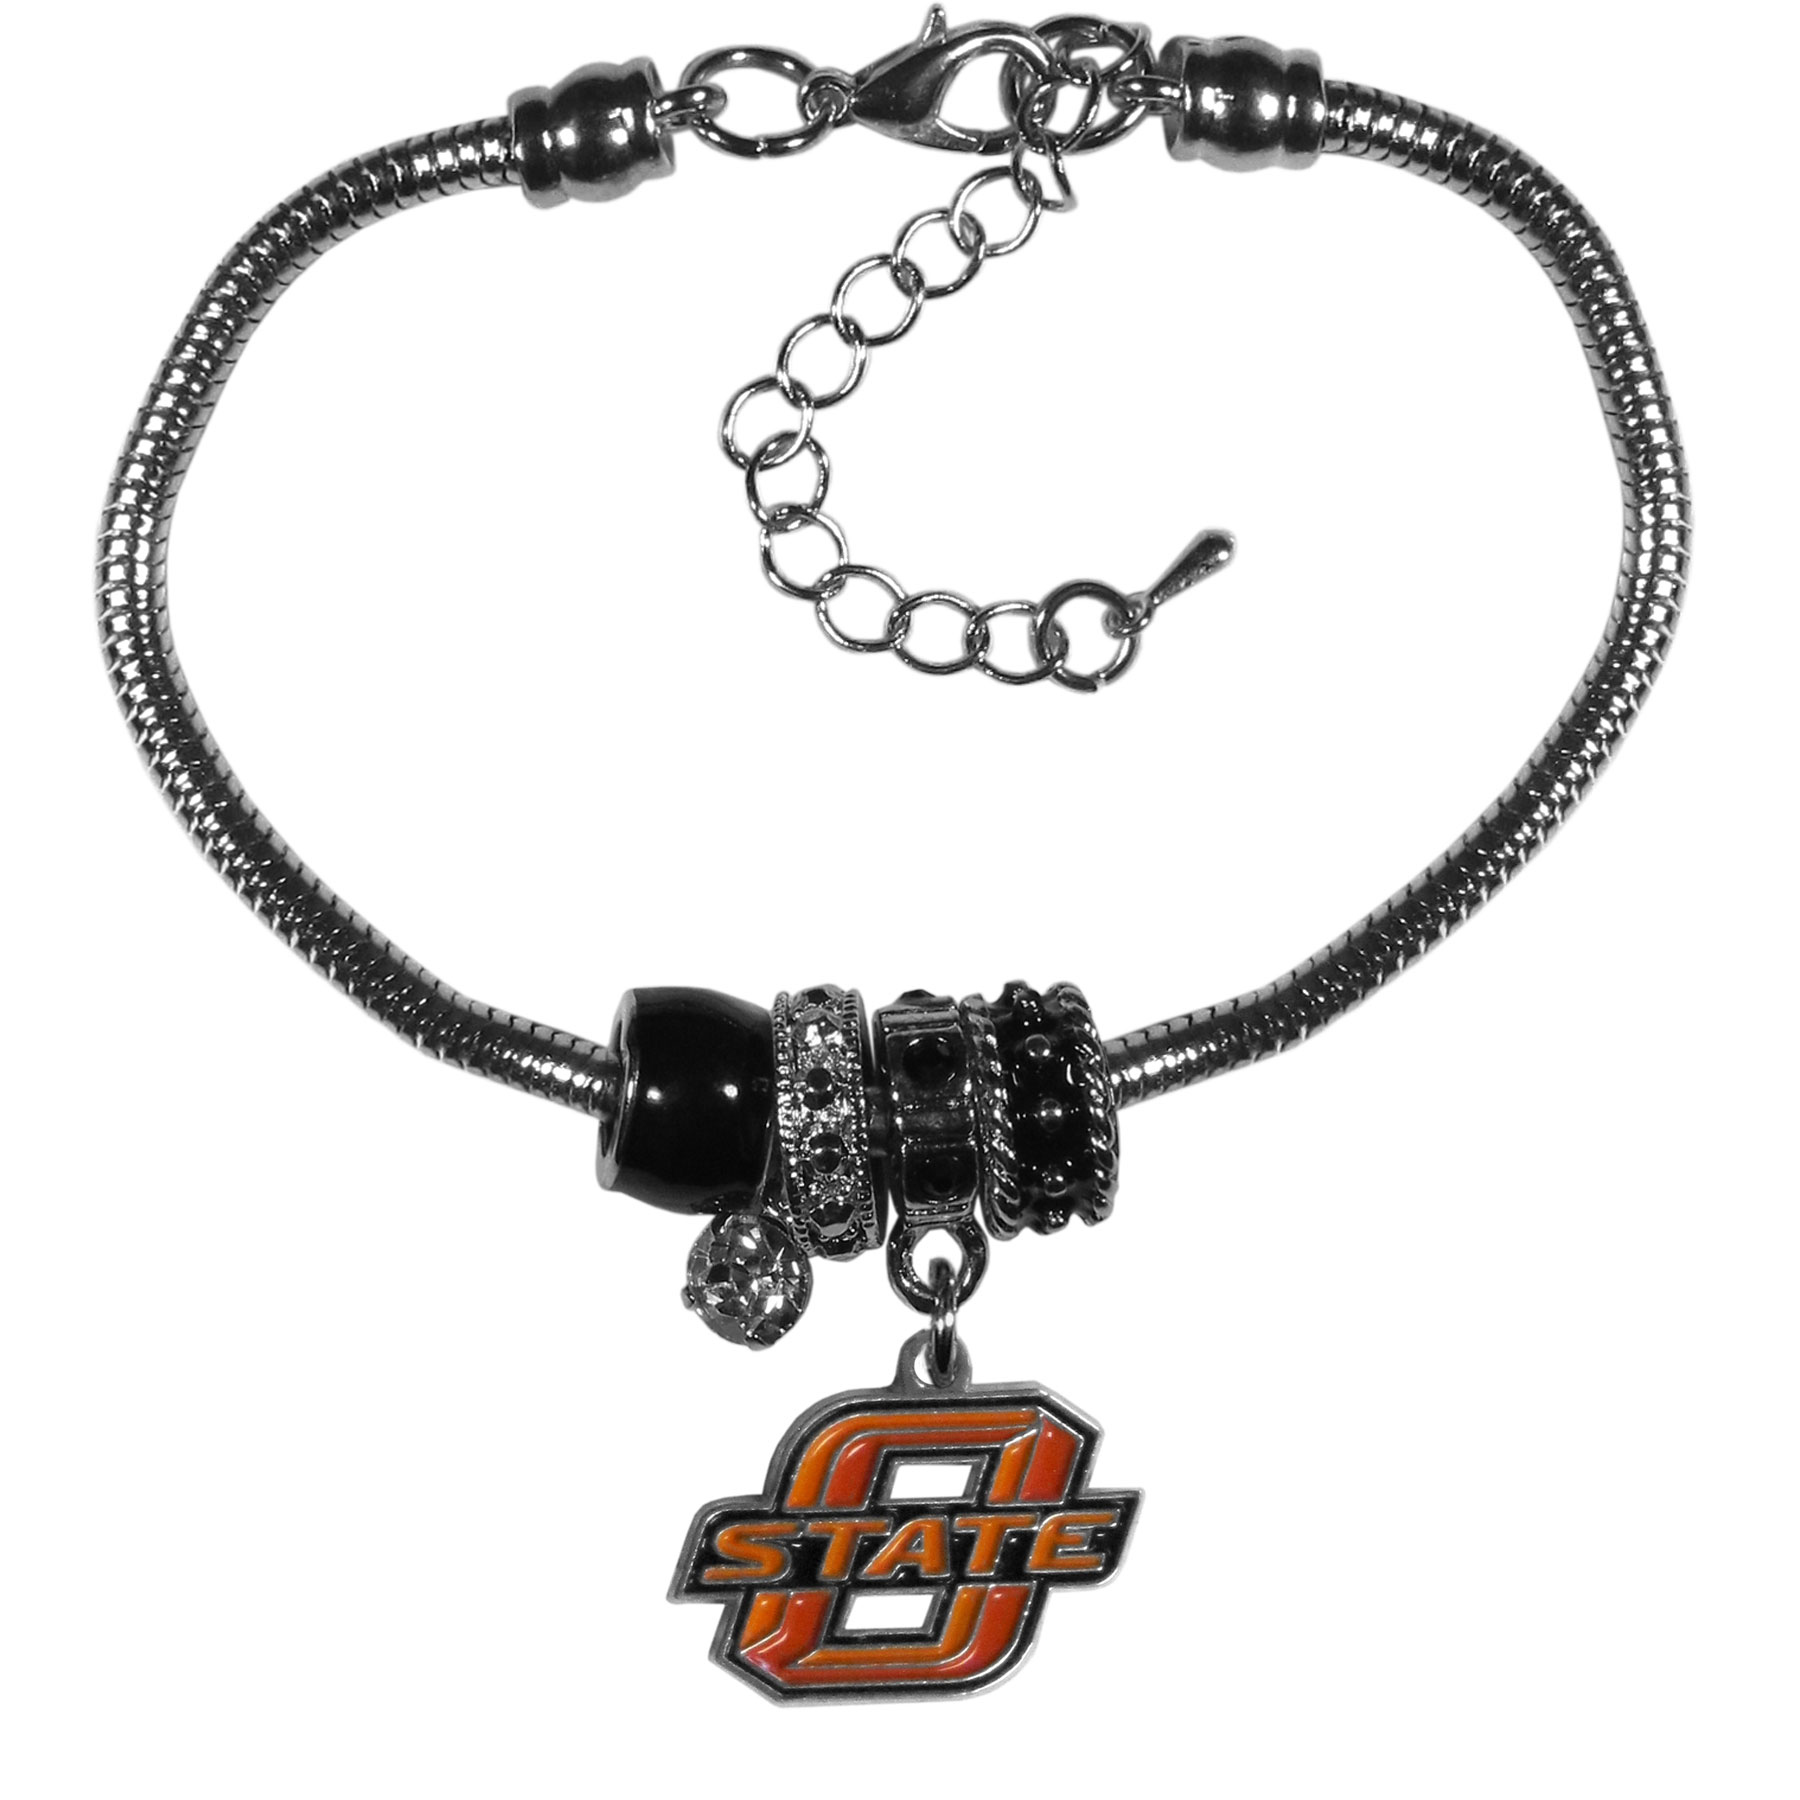 Oklahoma St. Cowboys Euro Bead Bracelet - We have combined the wildly popular Euro style beads with your favorite team to create our  Oklahoma St. Cowboys bead bracelet. The 7.5 inch snake chain with 2 inch extender features 4 Euro beads with enameled team colors and rhinestone accents with a high polish, nickel free charm and rhinestone charm. Perfect way to show off your team pride.